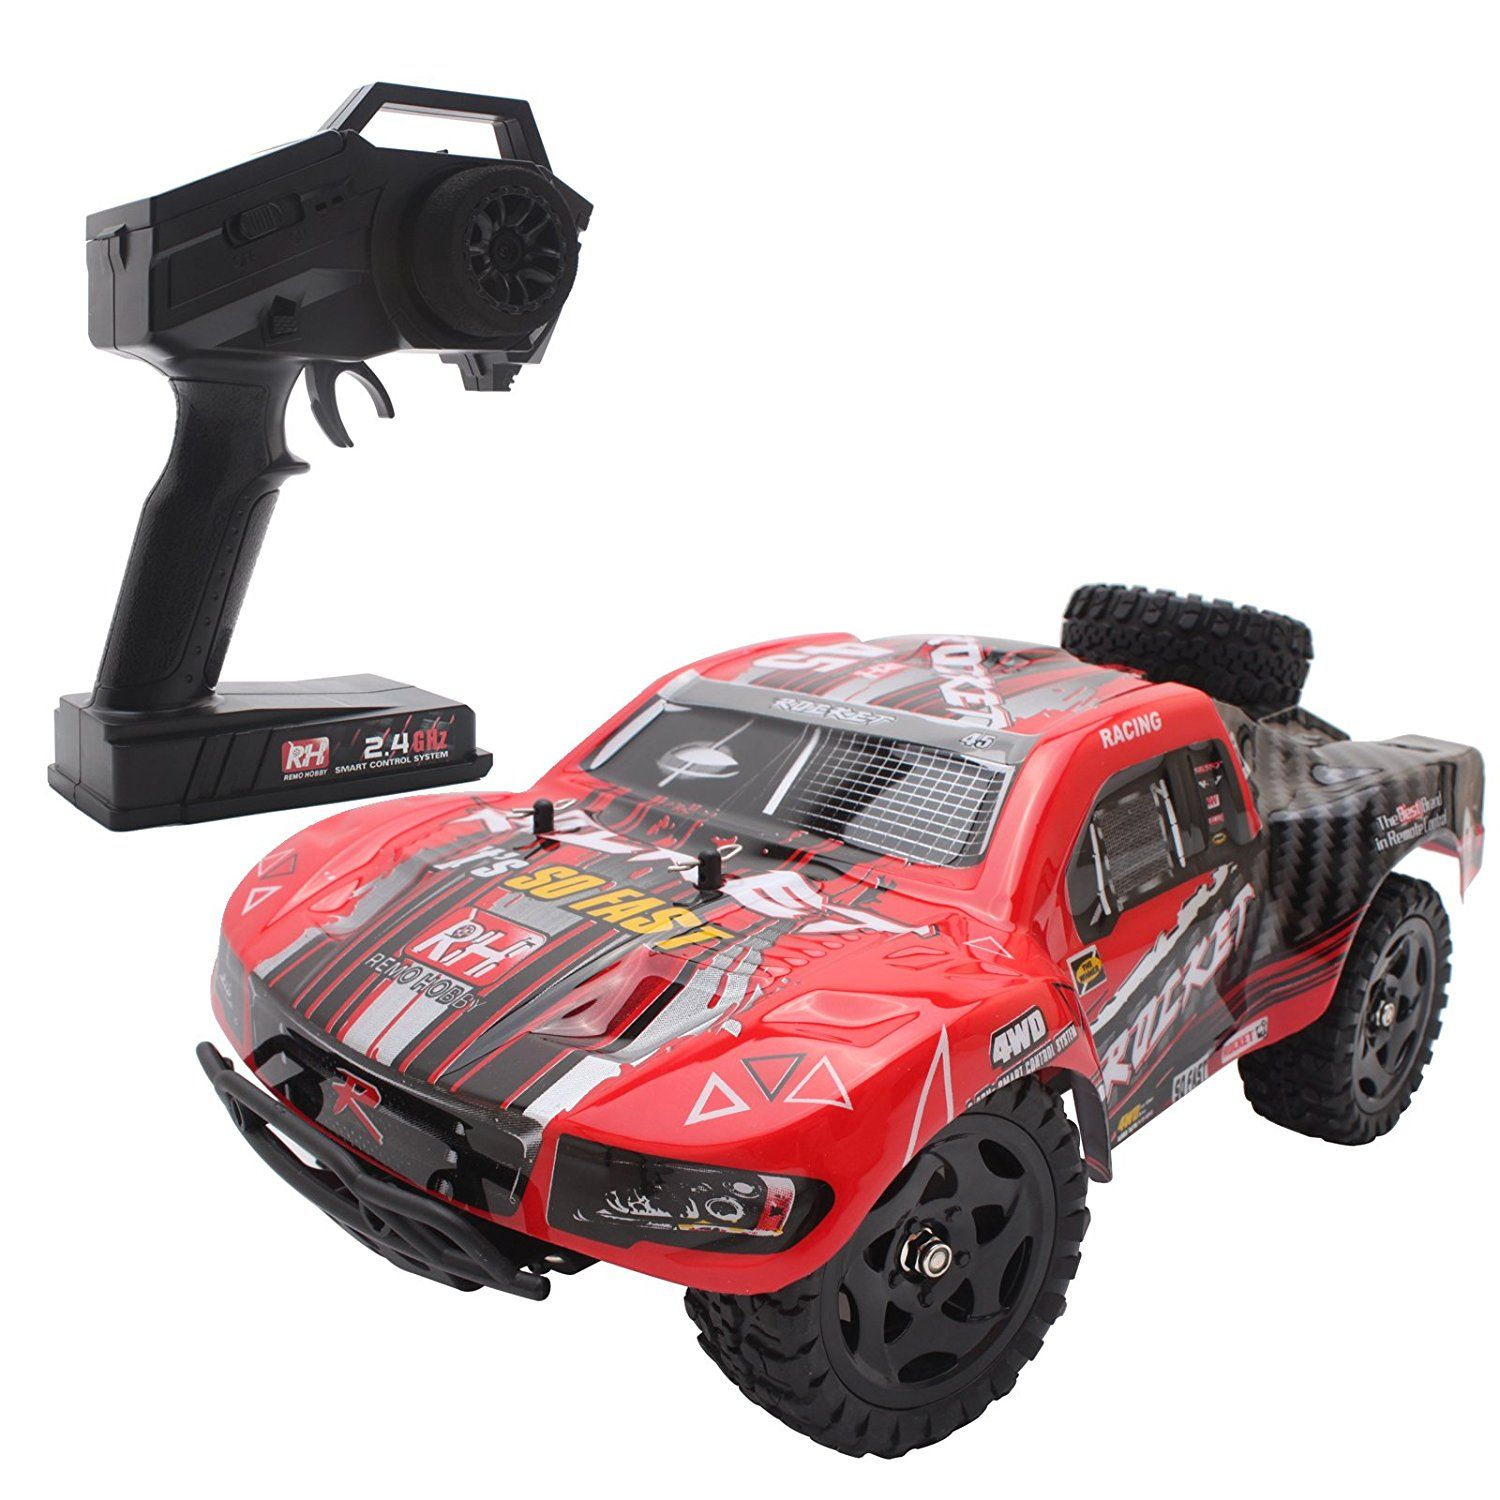 Cheerwing 1 16 2 4Ghz 4WD RC Truck High Speed f road Remote Control